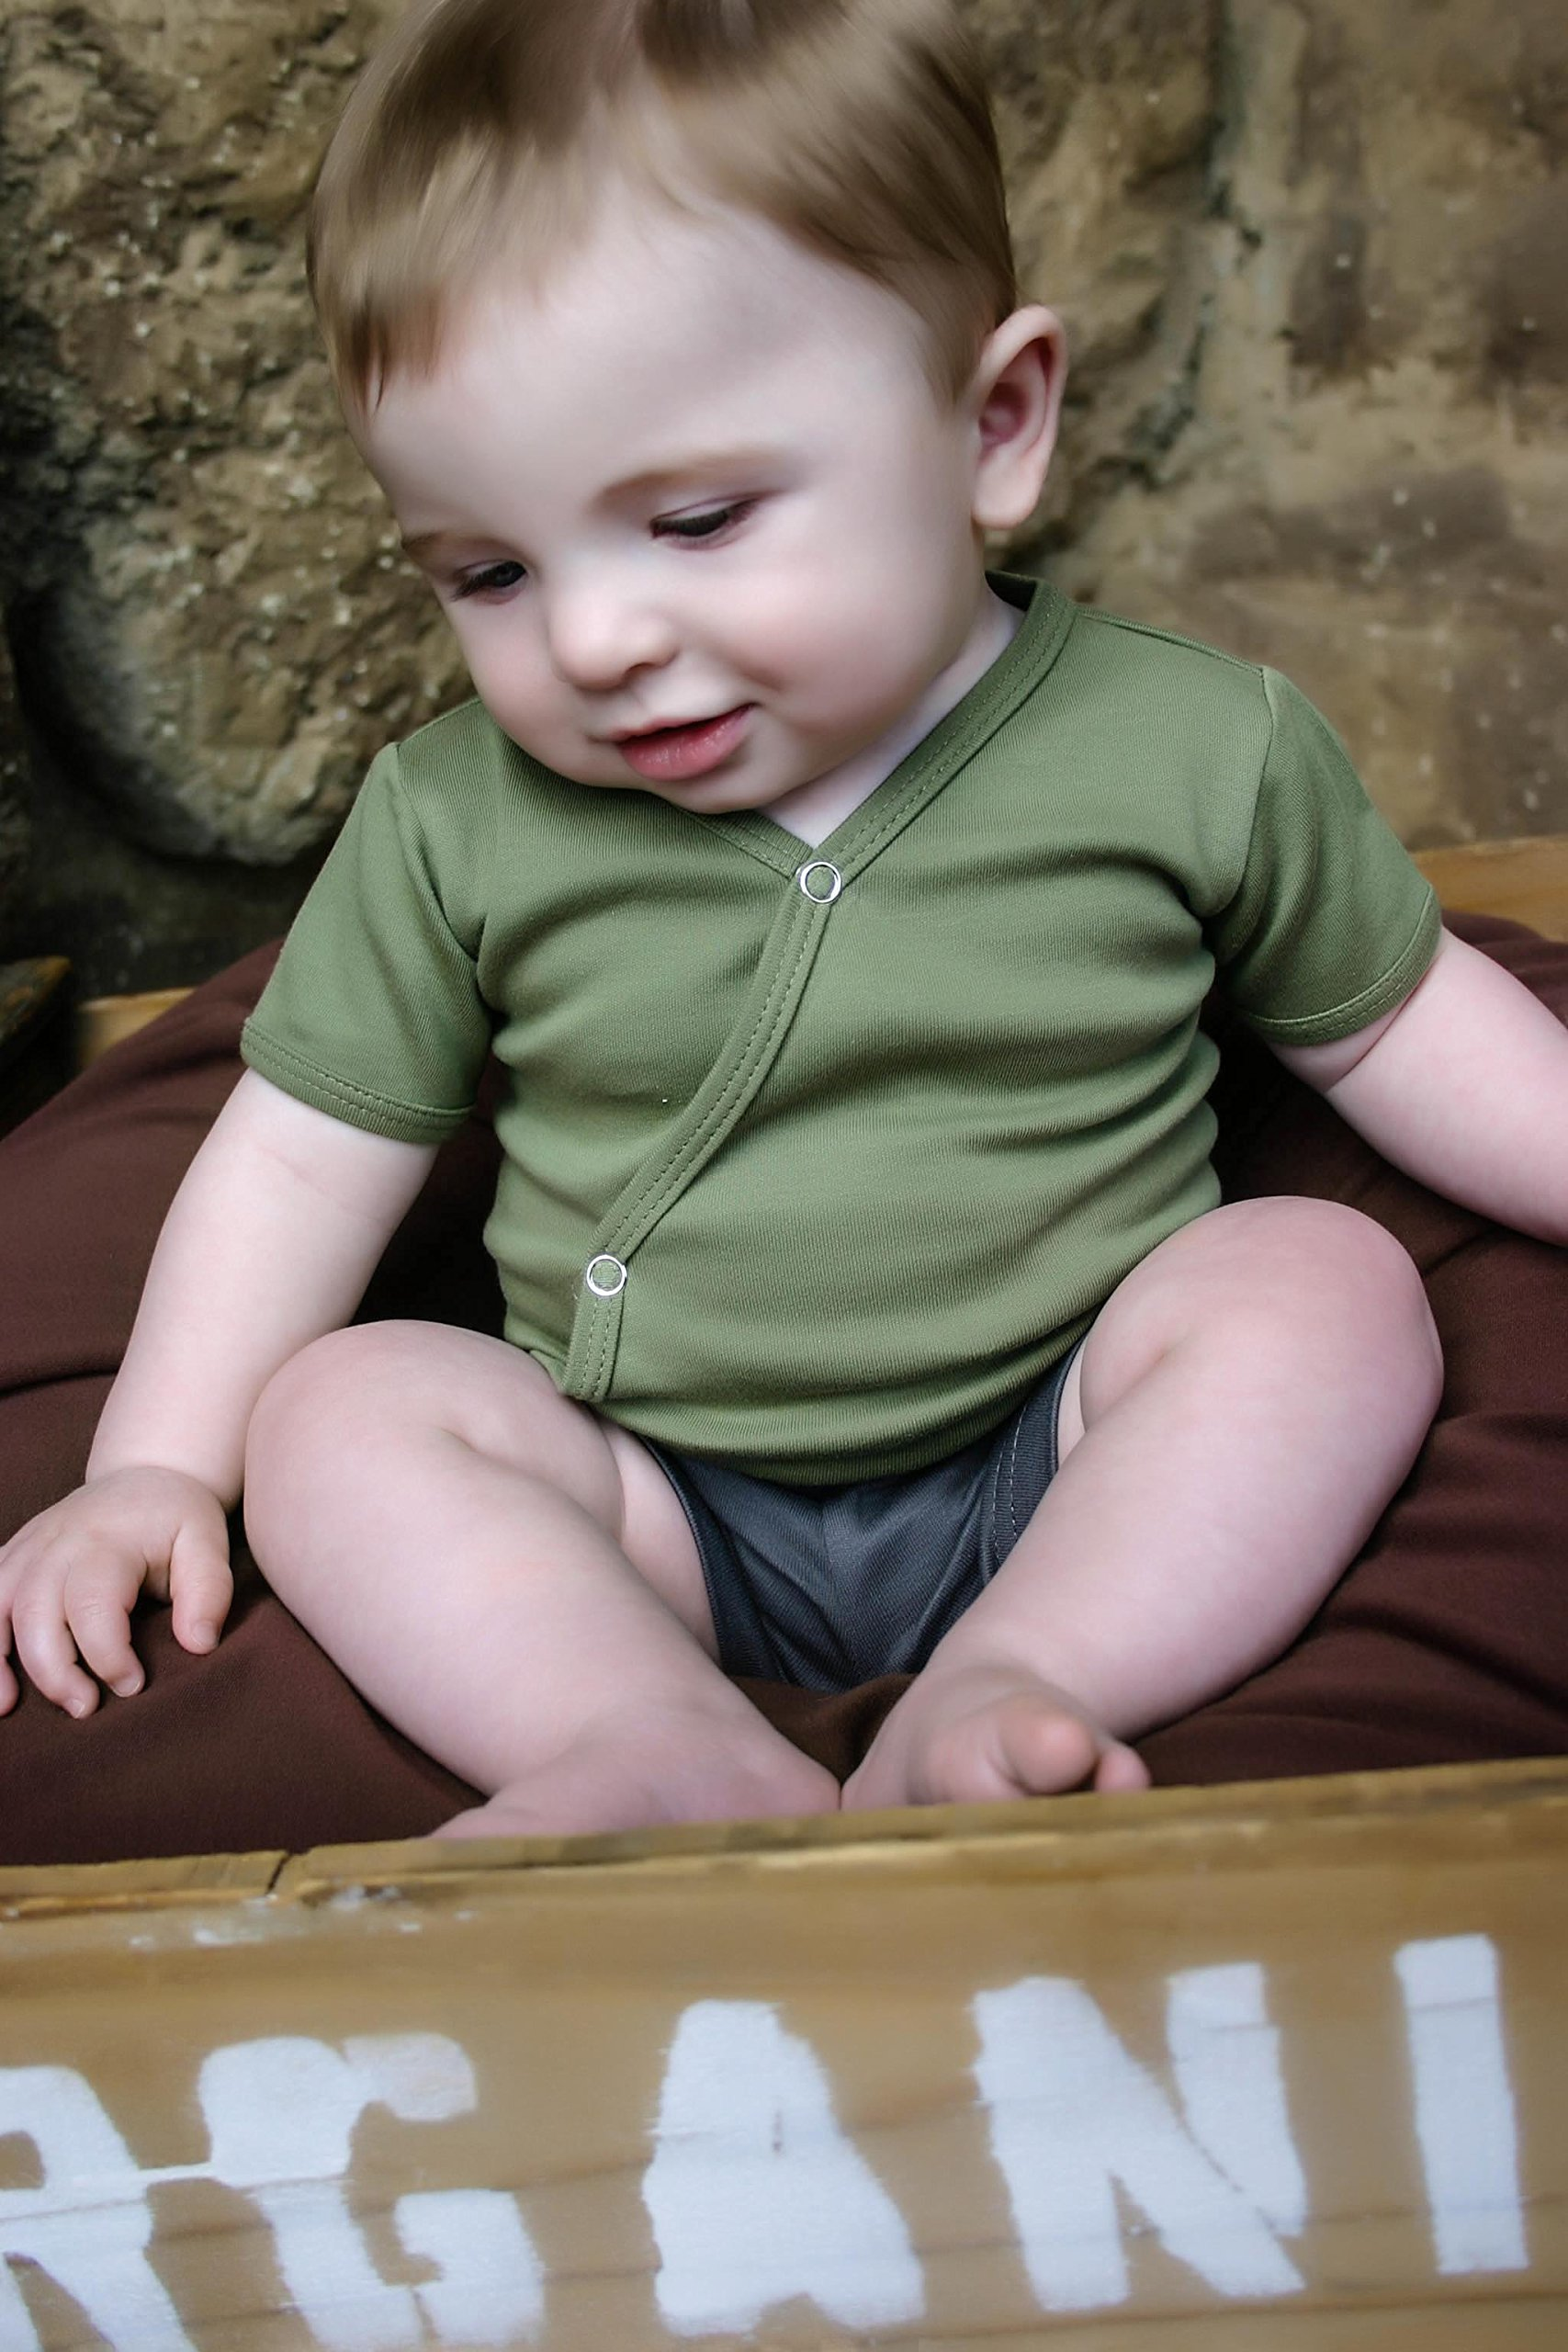 L'ovedbaby Unisex-Baby Organic Cotton Kimono Short Sleeve  Bodysuit, Sage, 0/3 Months by L'ovedbaby (Image #3)